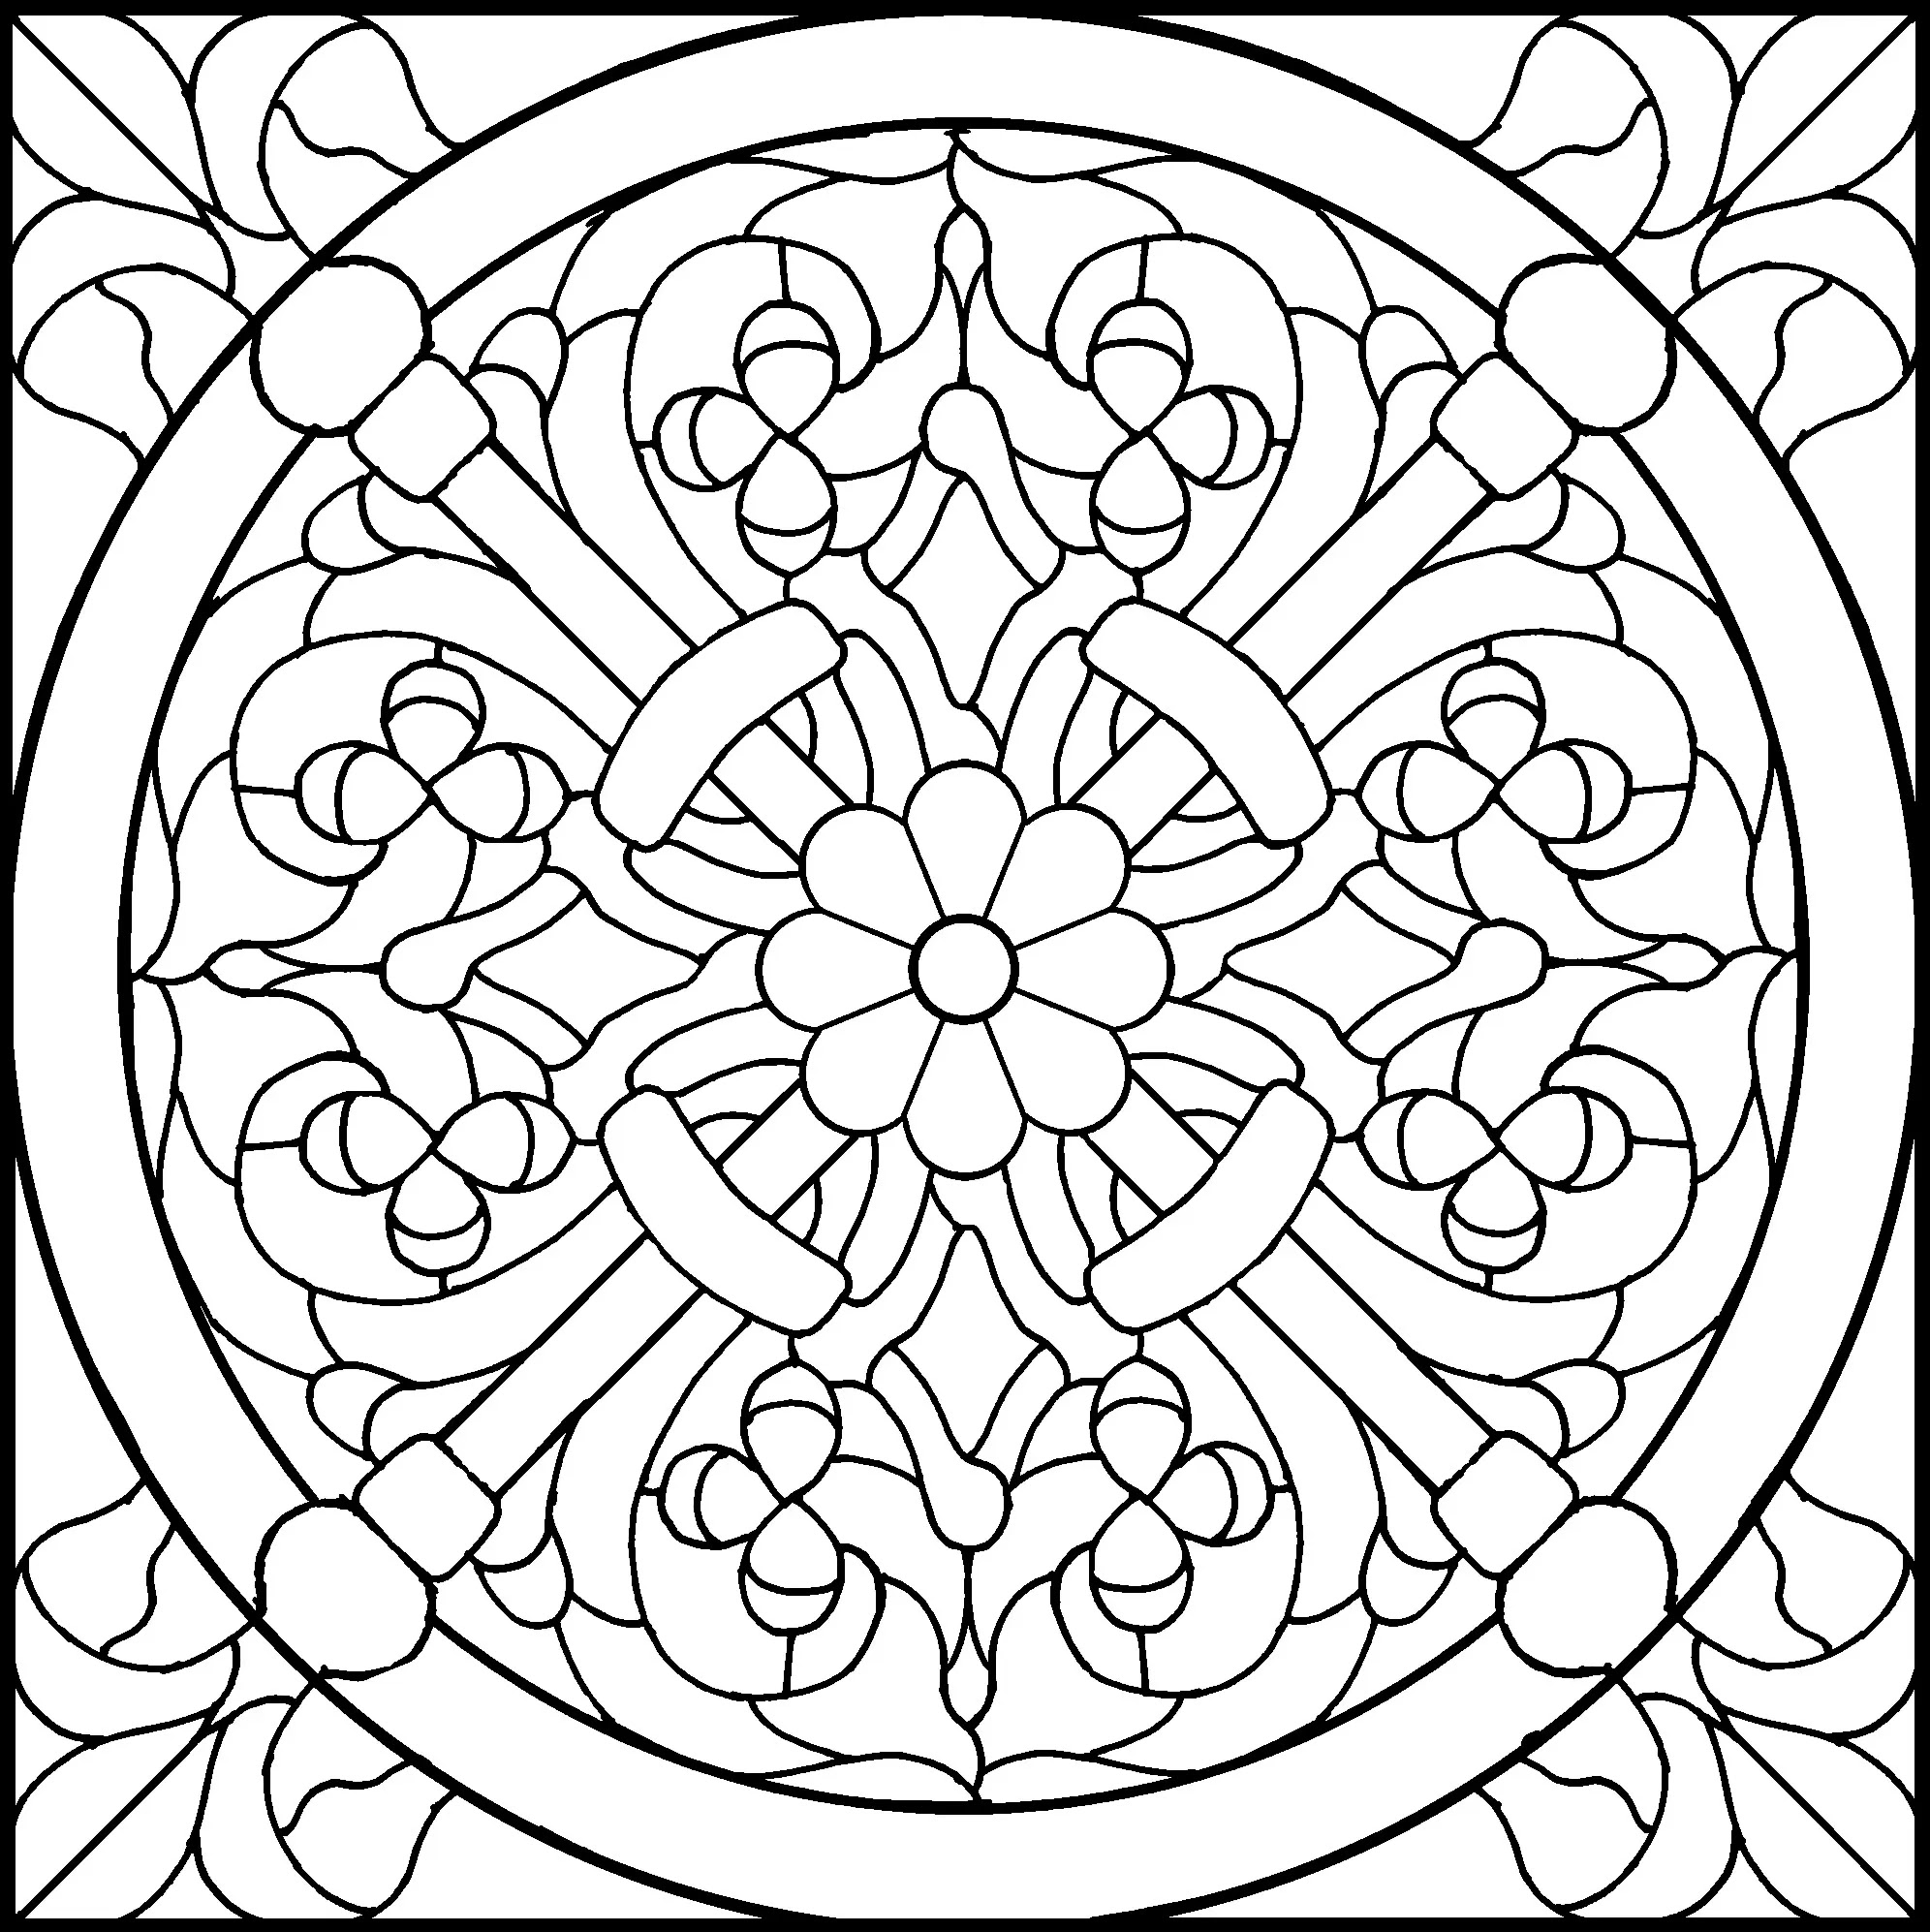 45 Simple Stained Glass Patterns | Guide Patterns